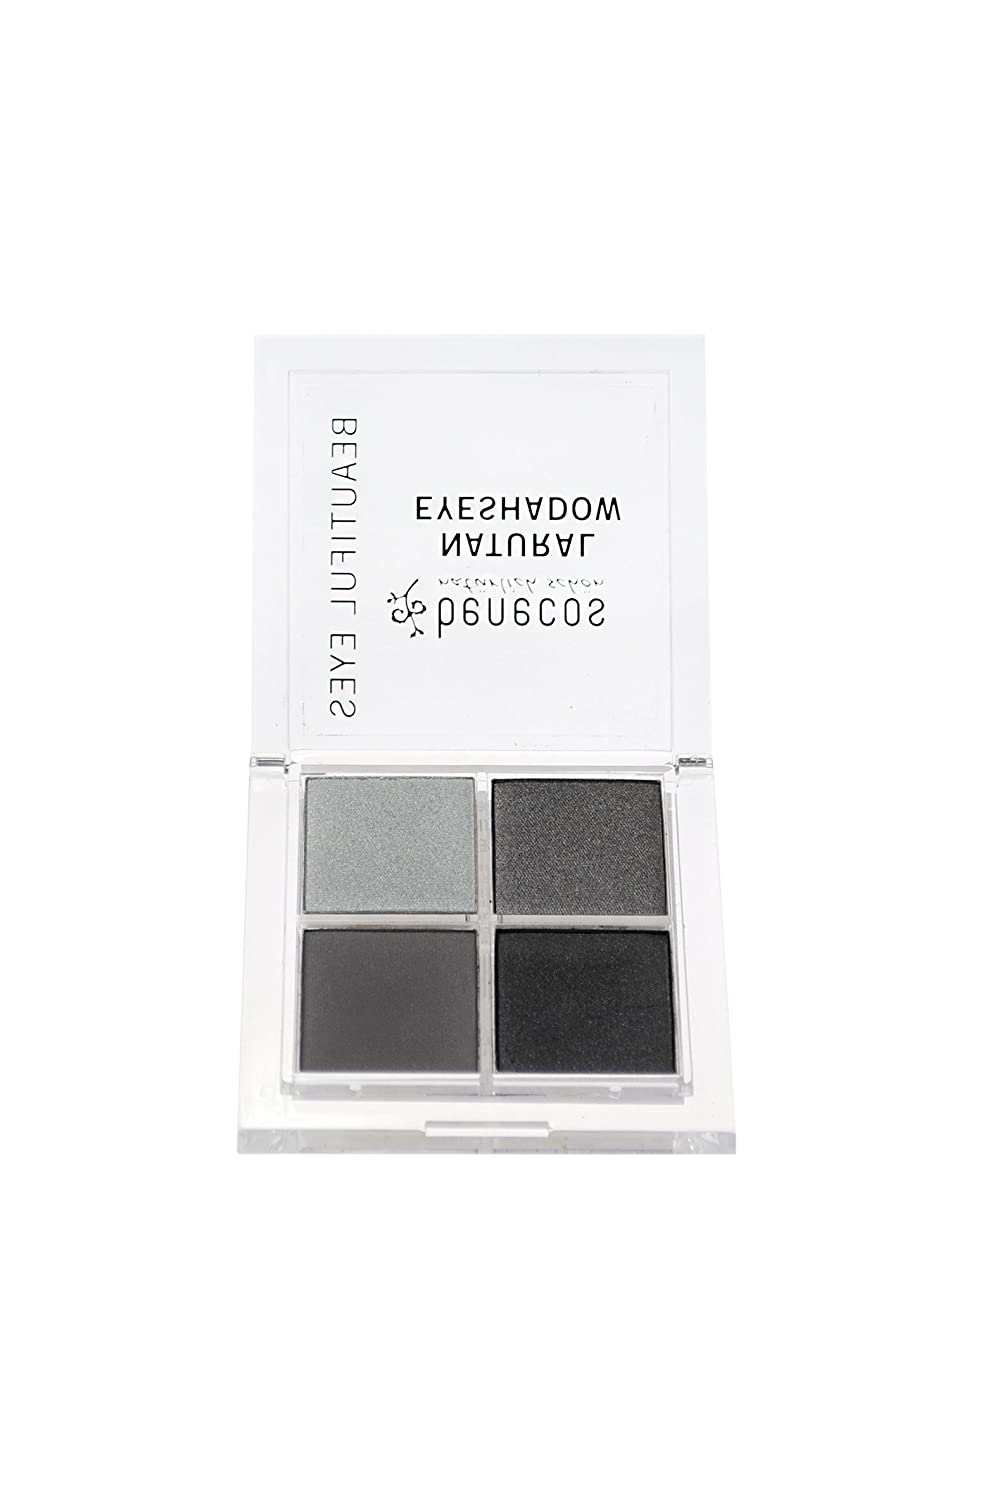 Benecos Natural Quattro Eyeshadow, Smokey Eyes Cosmondial GmbH & Co. KG B09253